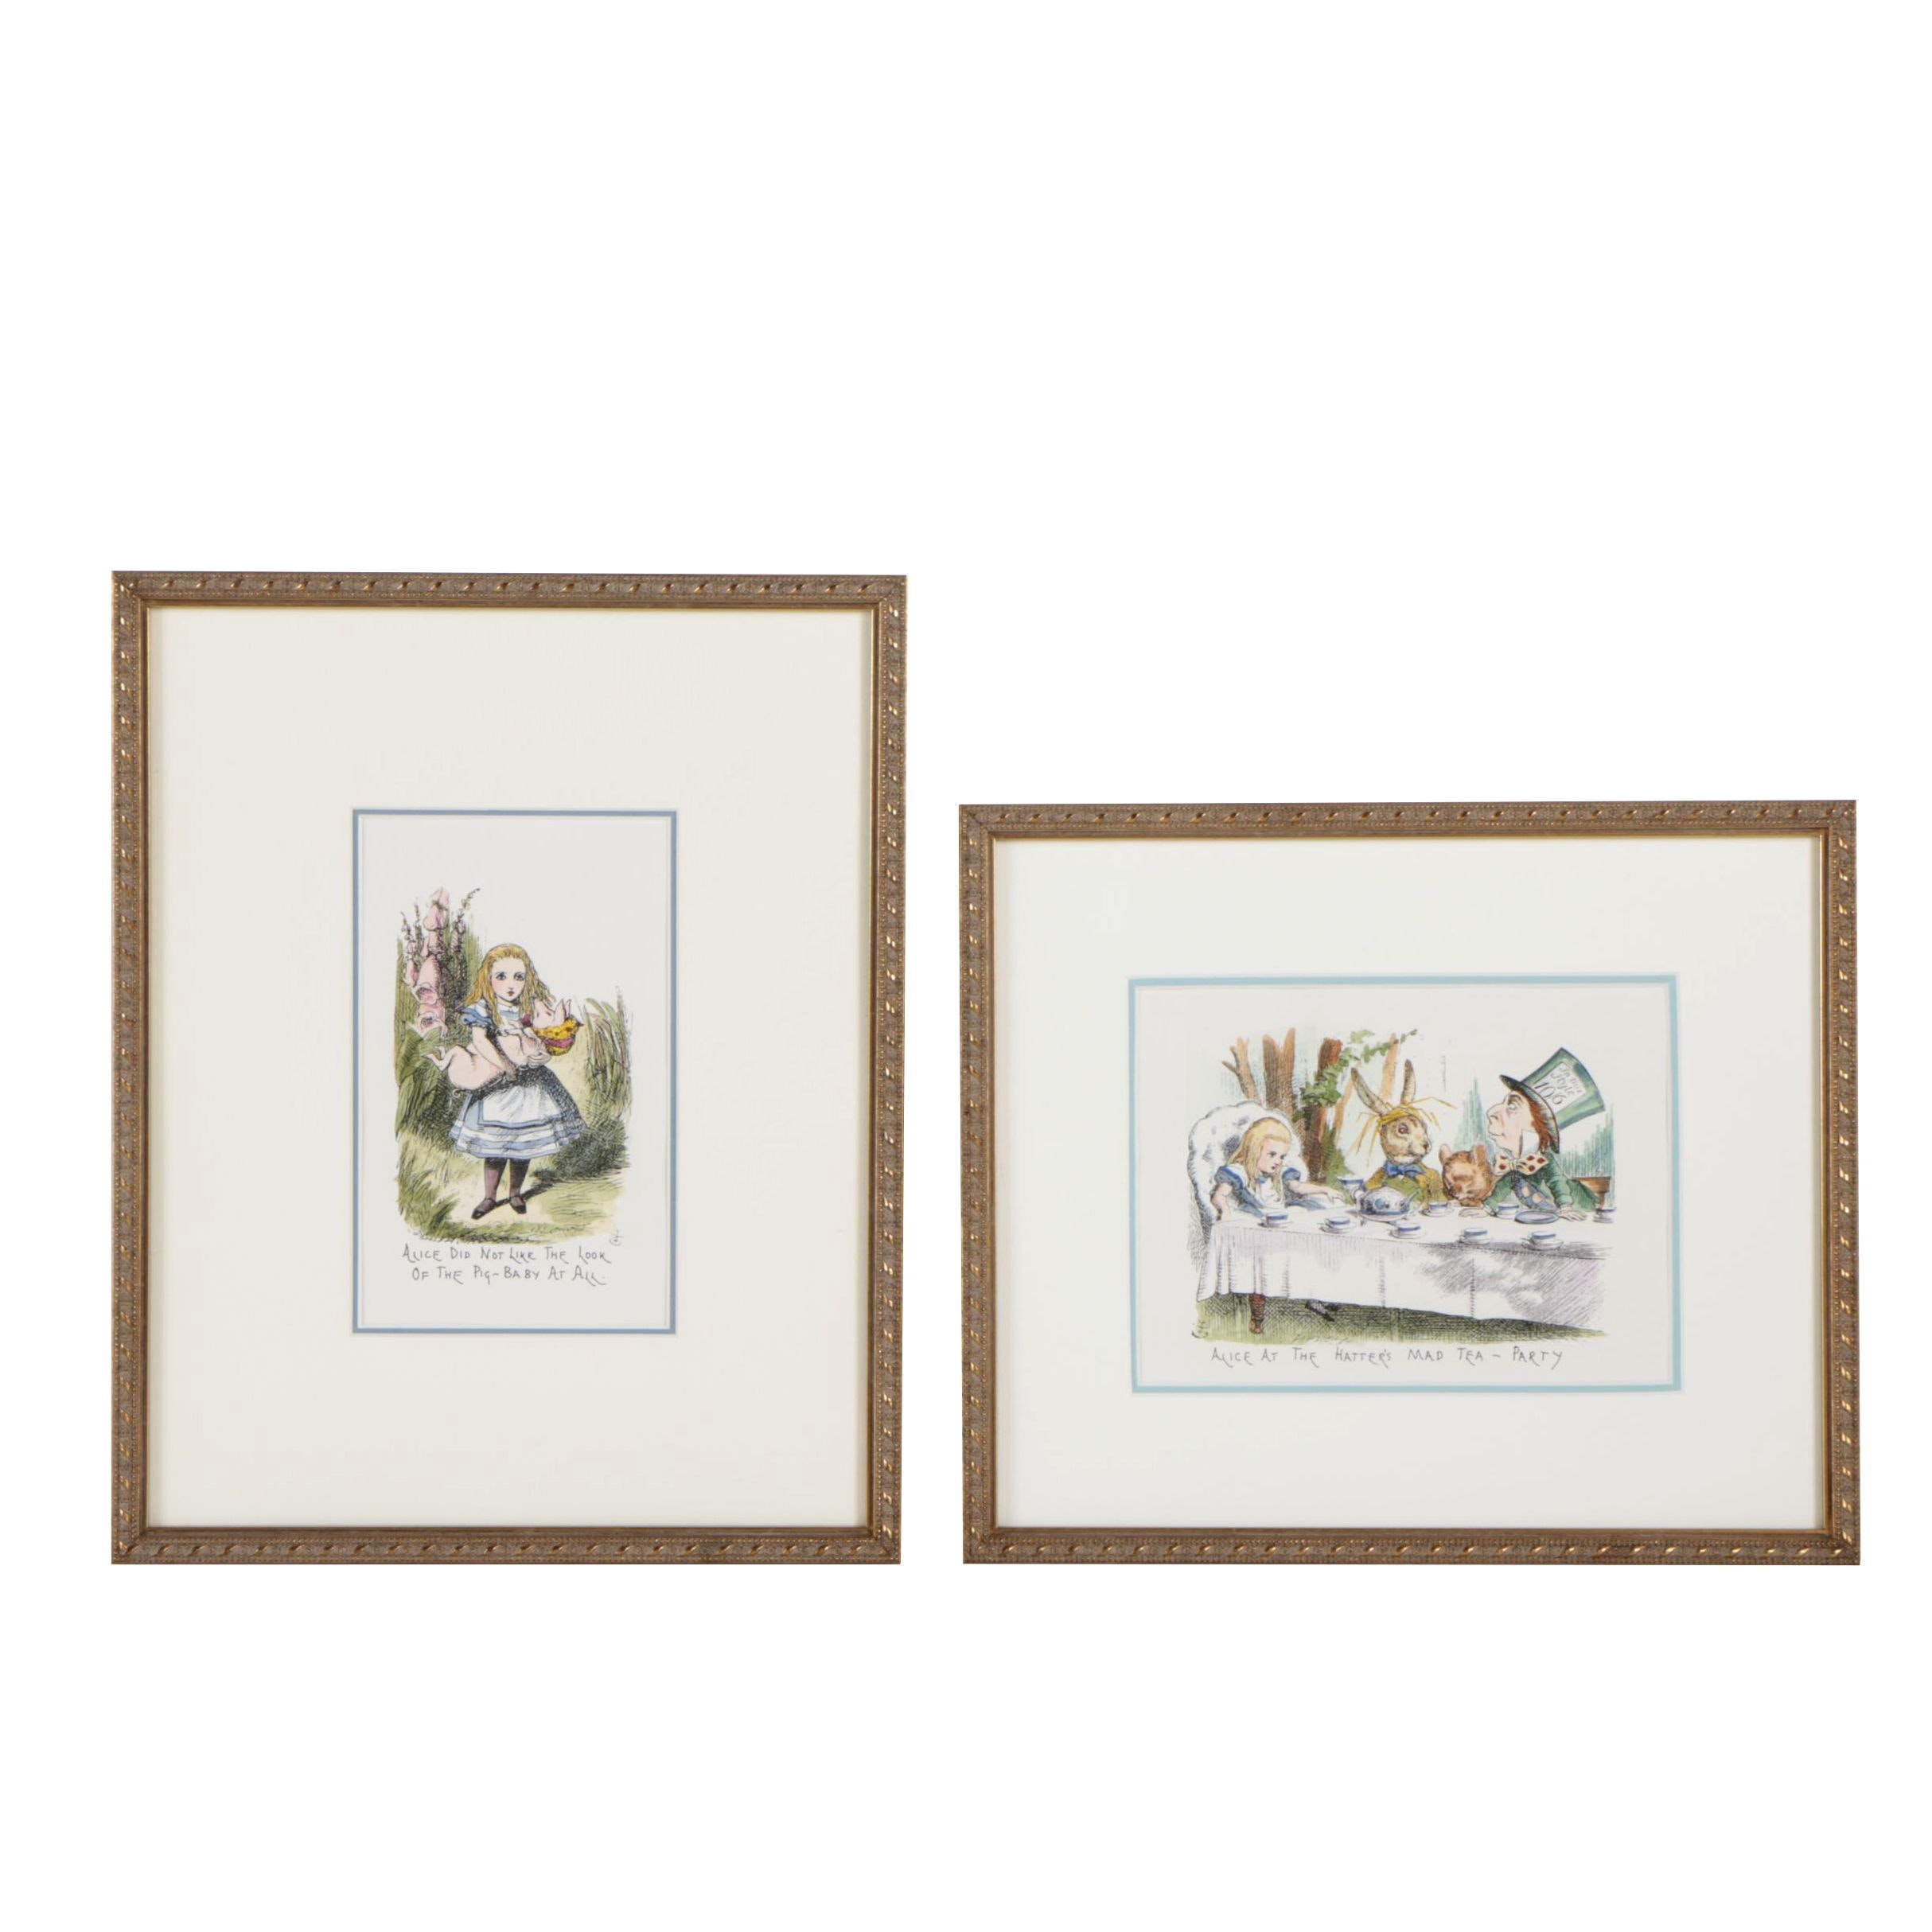 Hand-Colored Photolithographs after John Tenniel